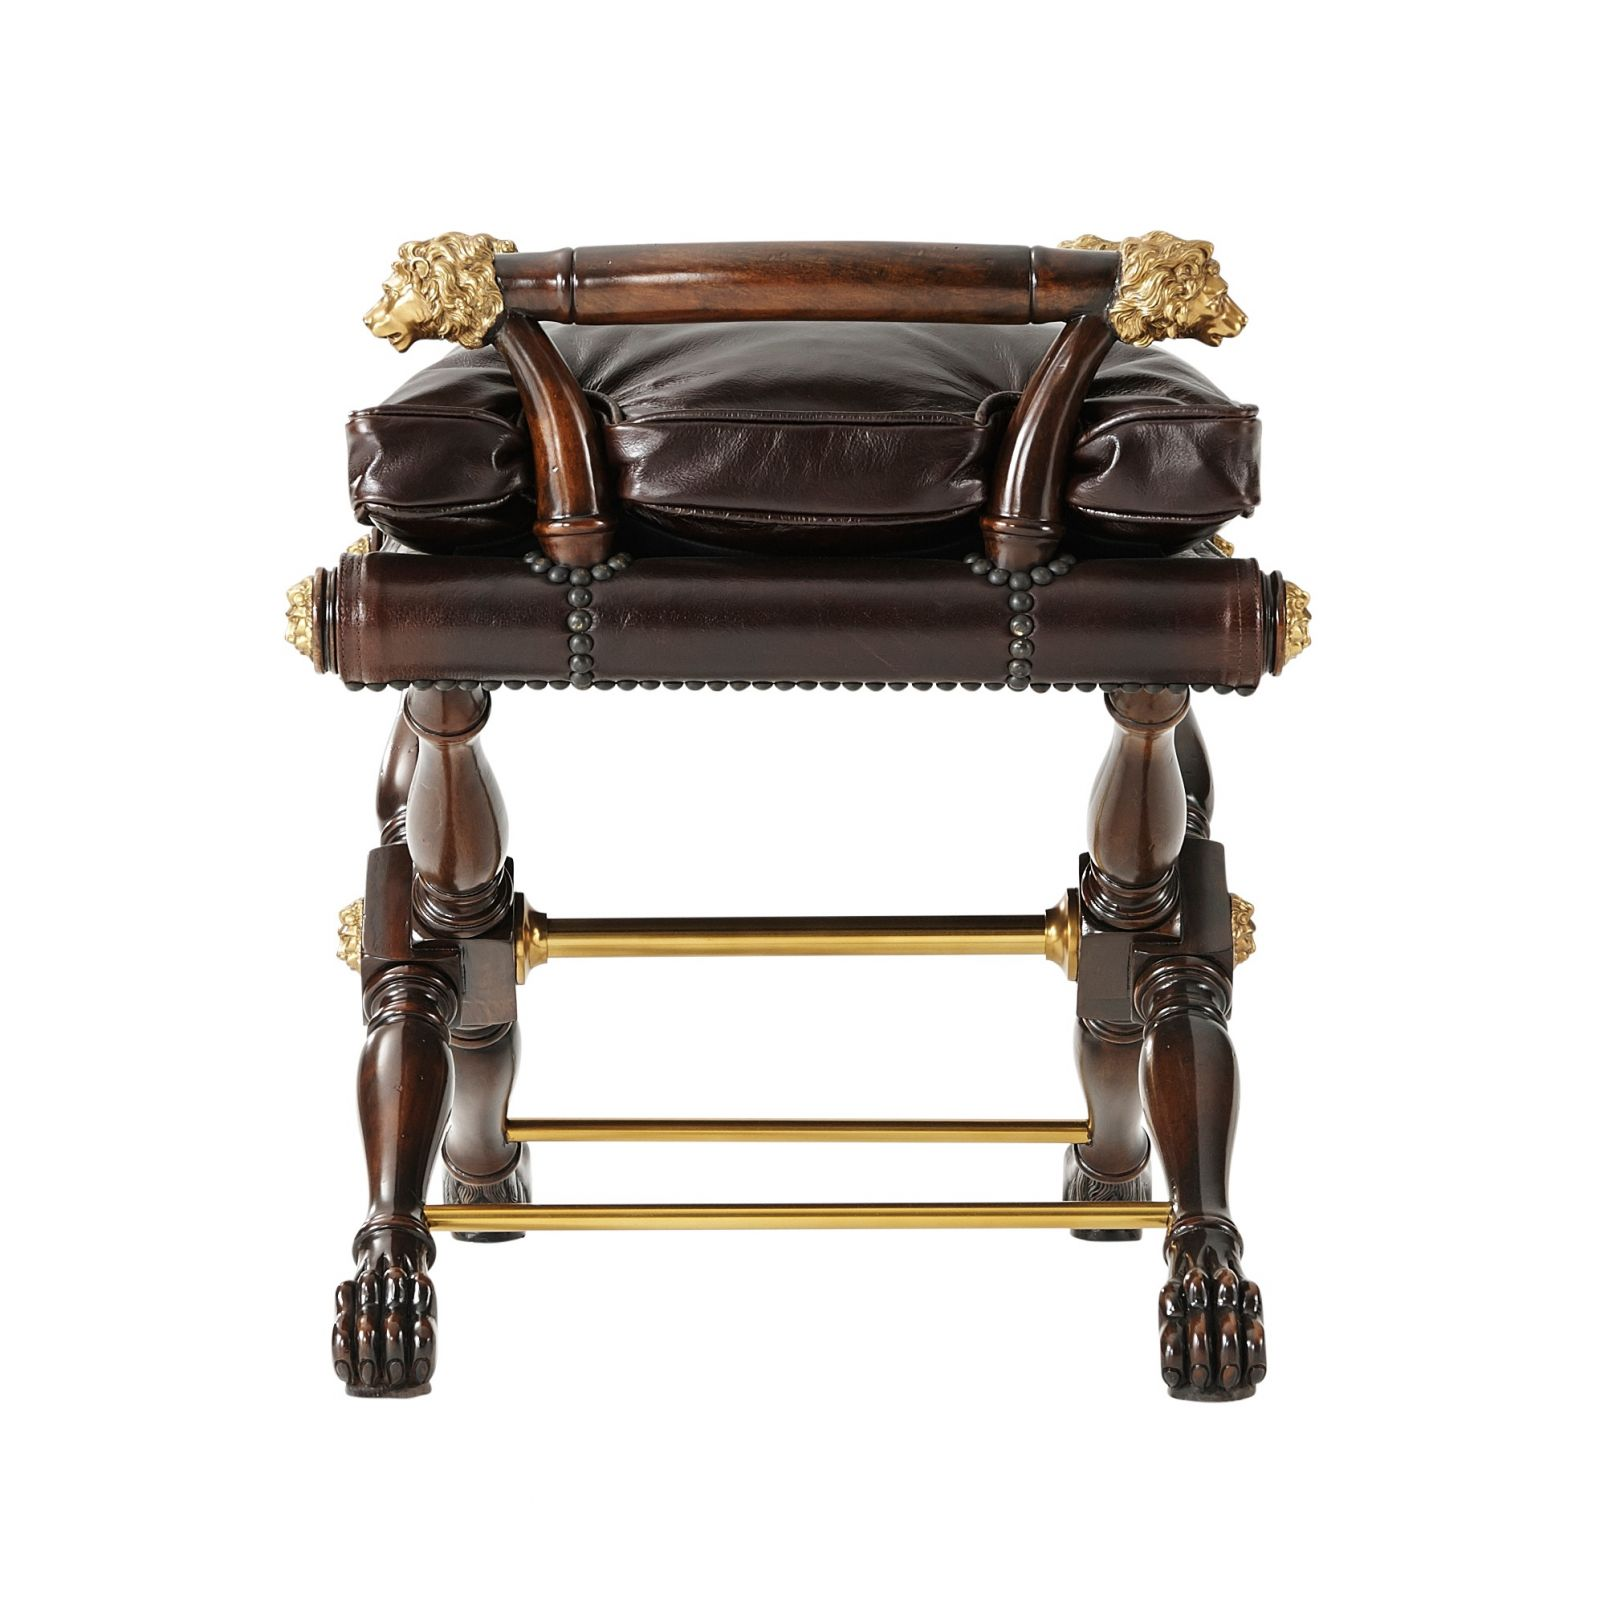 A sable mahogany and brass mounted stool